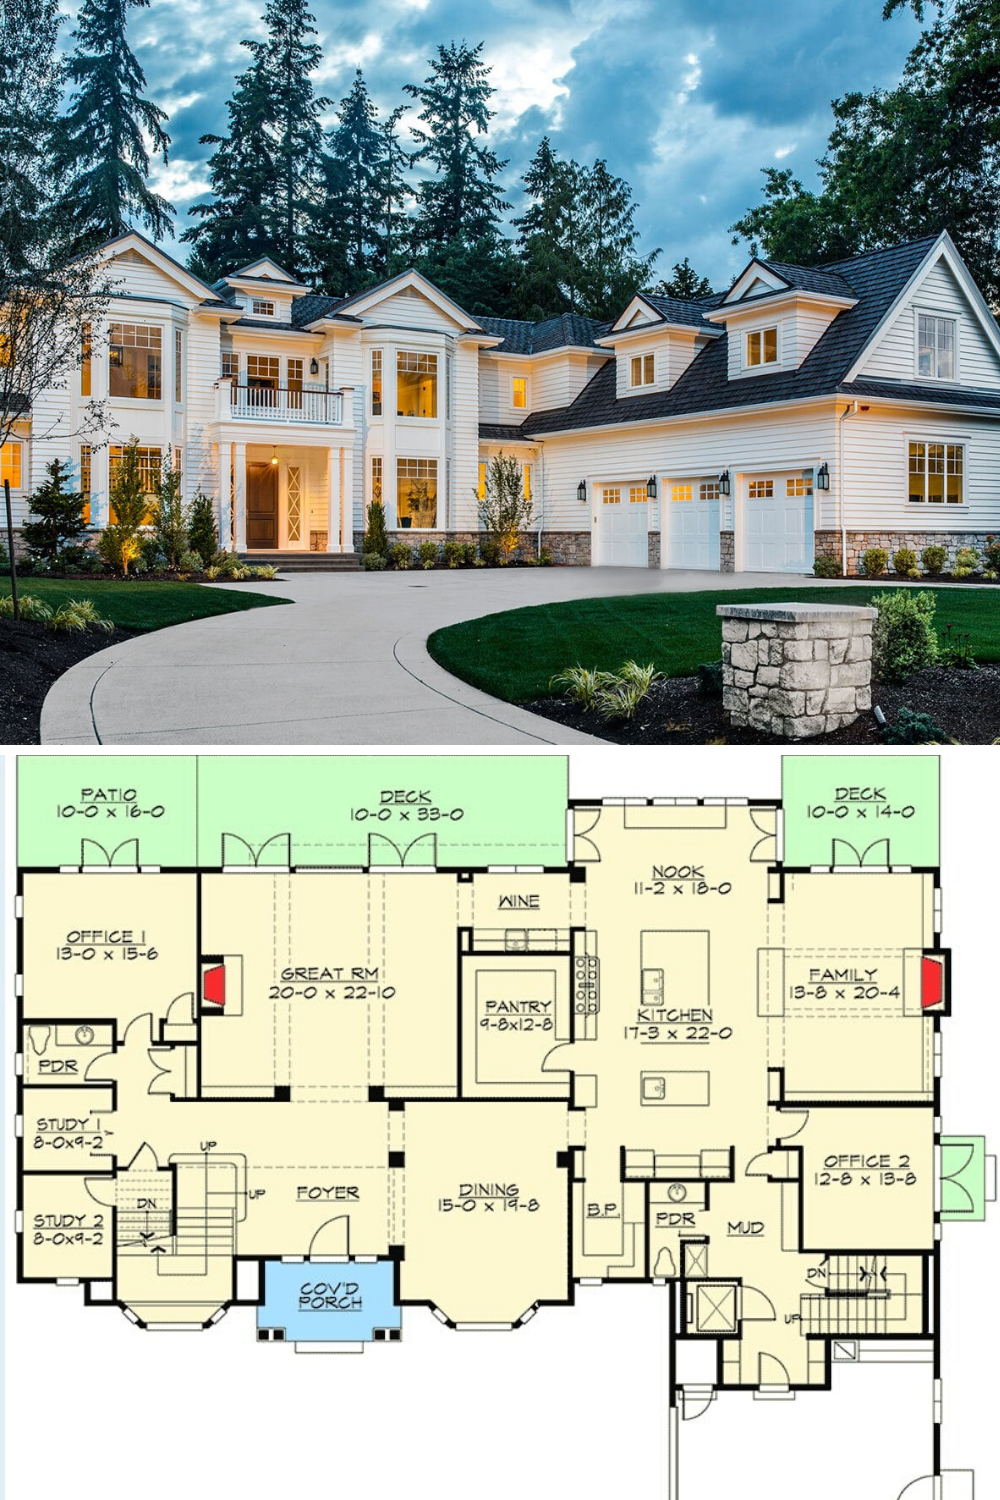 Photo of Two-Story 5-Bedroom Traditional Colonial Home (Floor Plan)